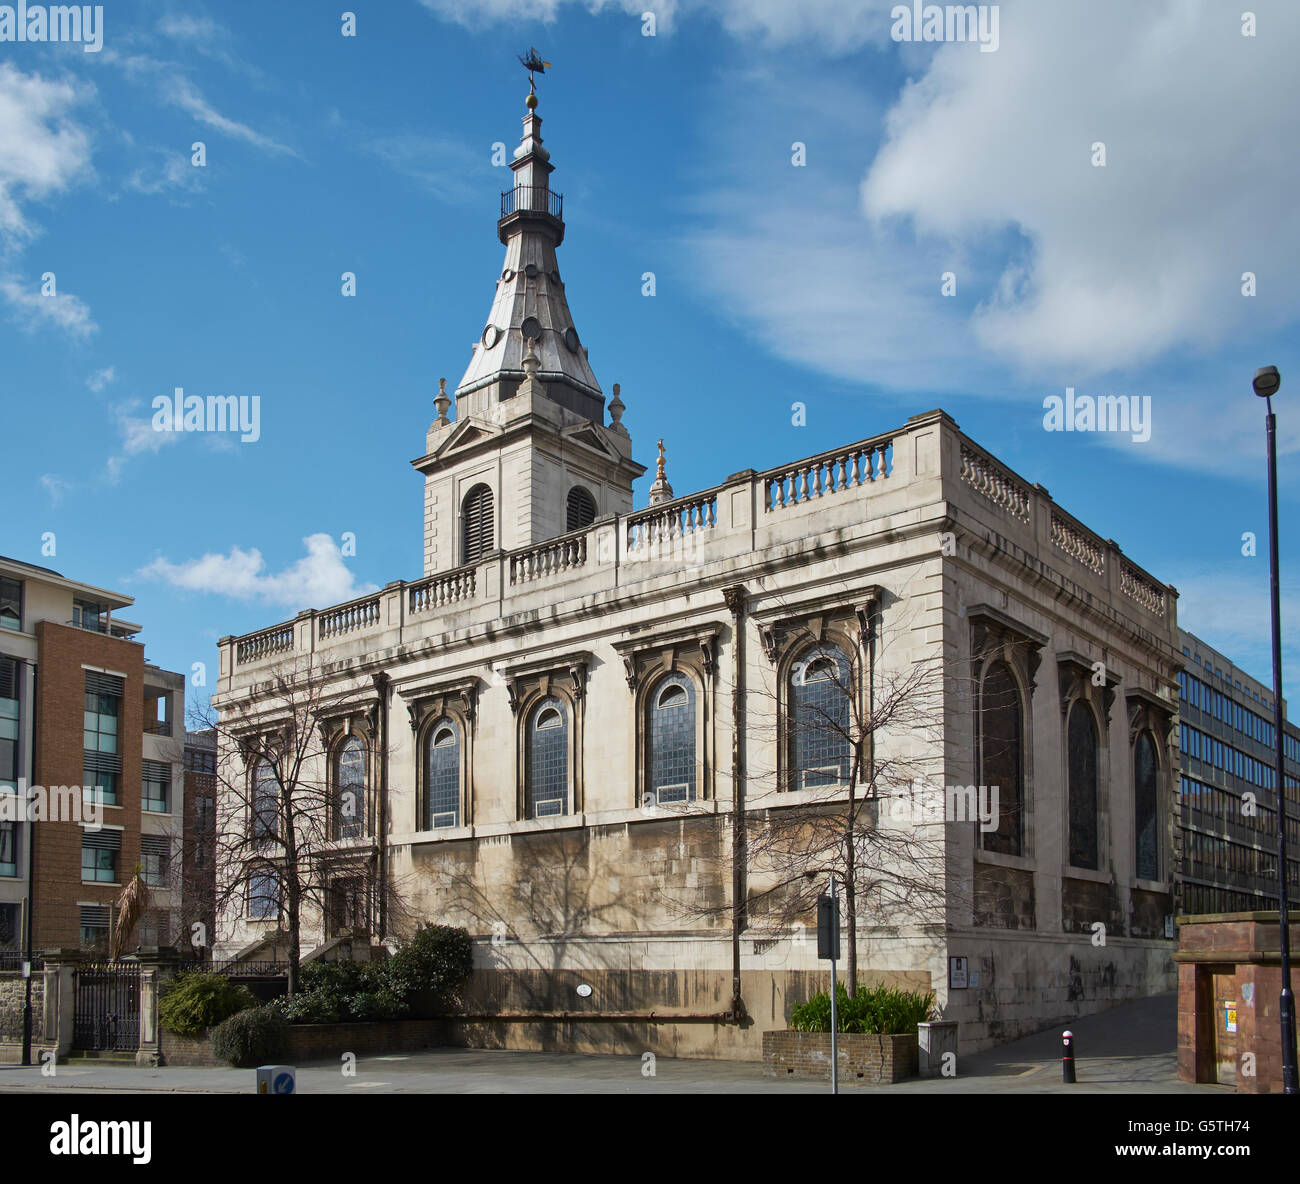 St Nicholas Cole Abbey, church in the City of London; exterior - Stock Image